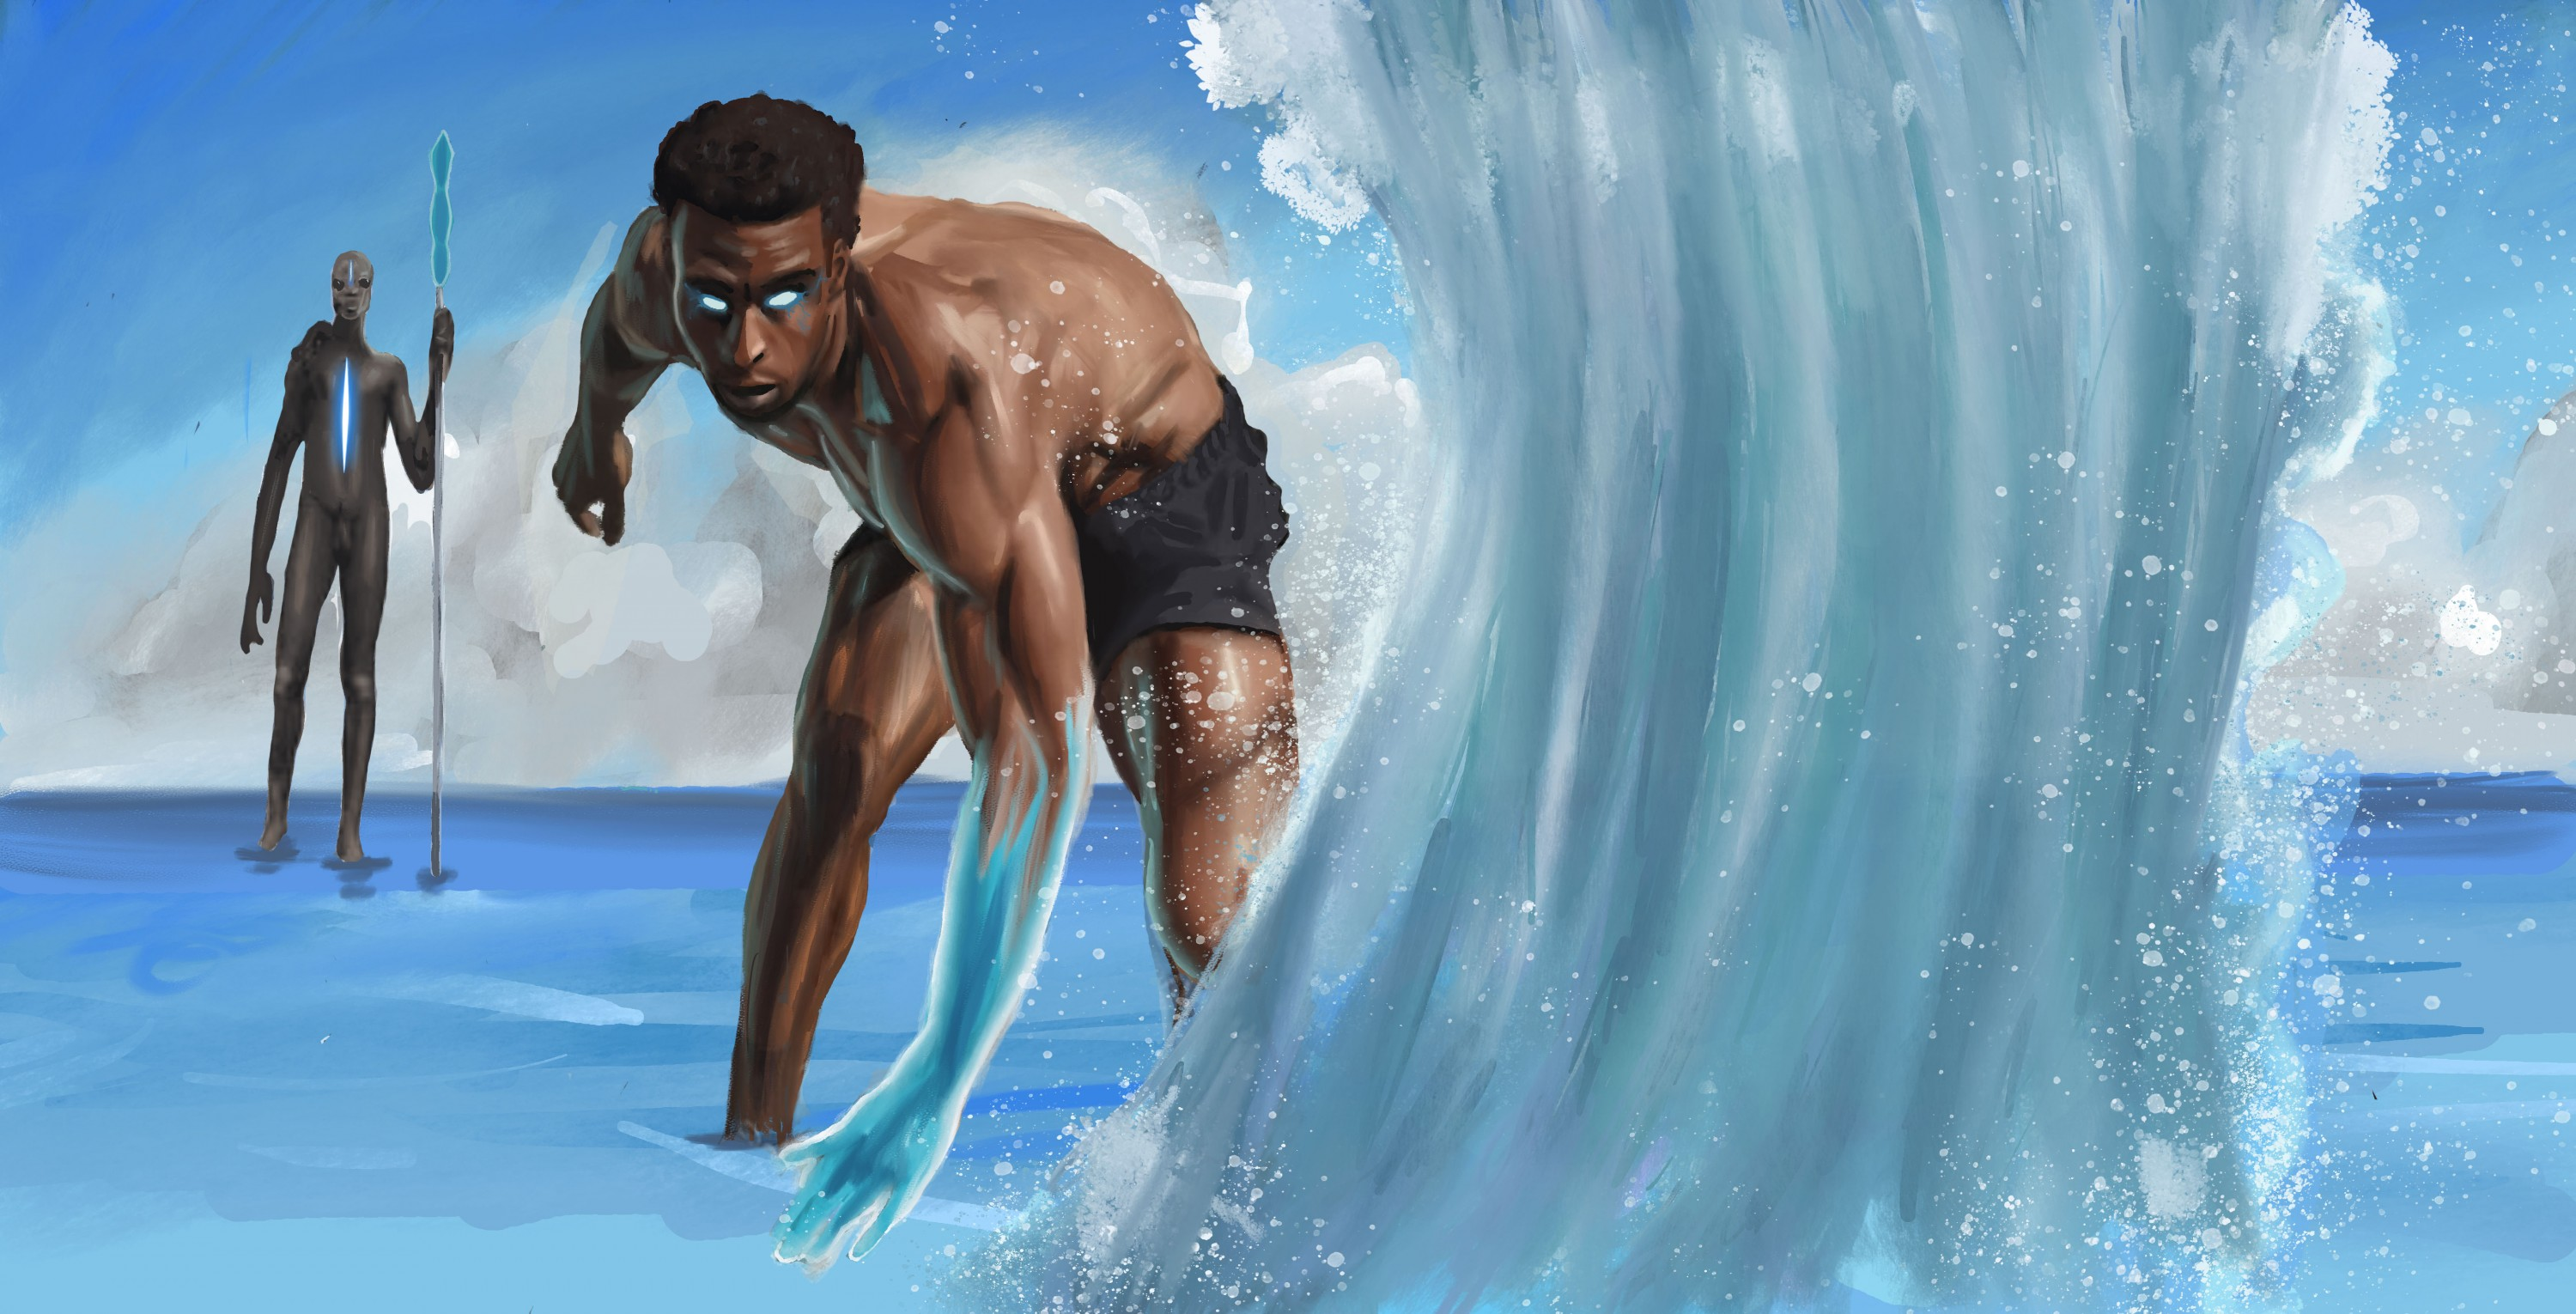 The character is practicing using his water abilities. His eyes are glowing and has no shirt on. The water is being pushed up in the foreground. In the background is one of the water spirits watching him. He holds a staff. He is tall with dark skin and ha